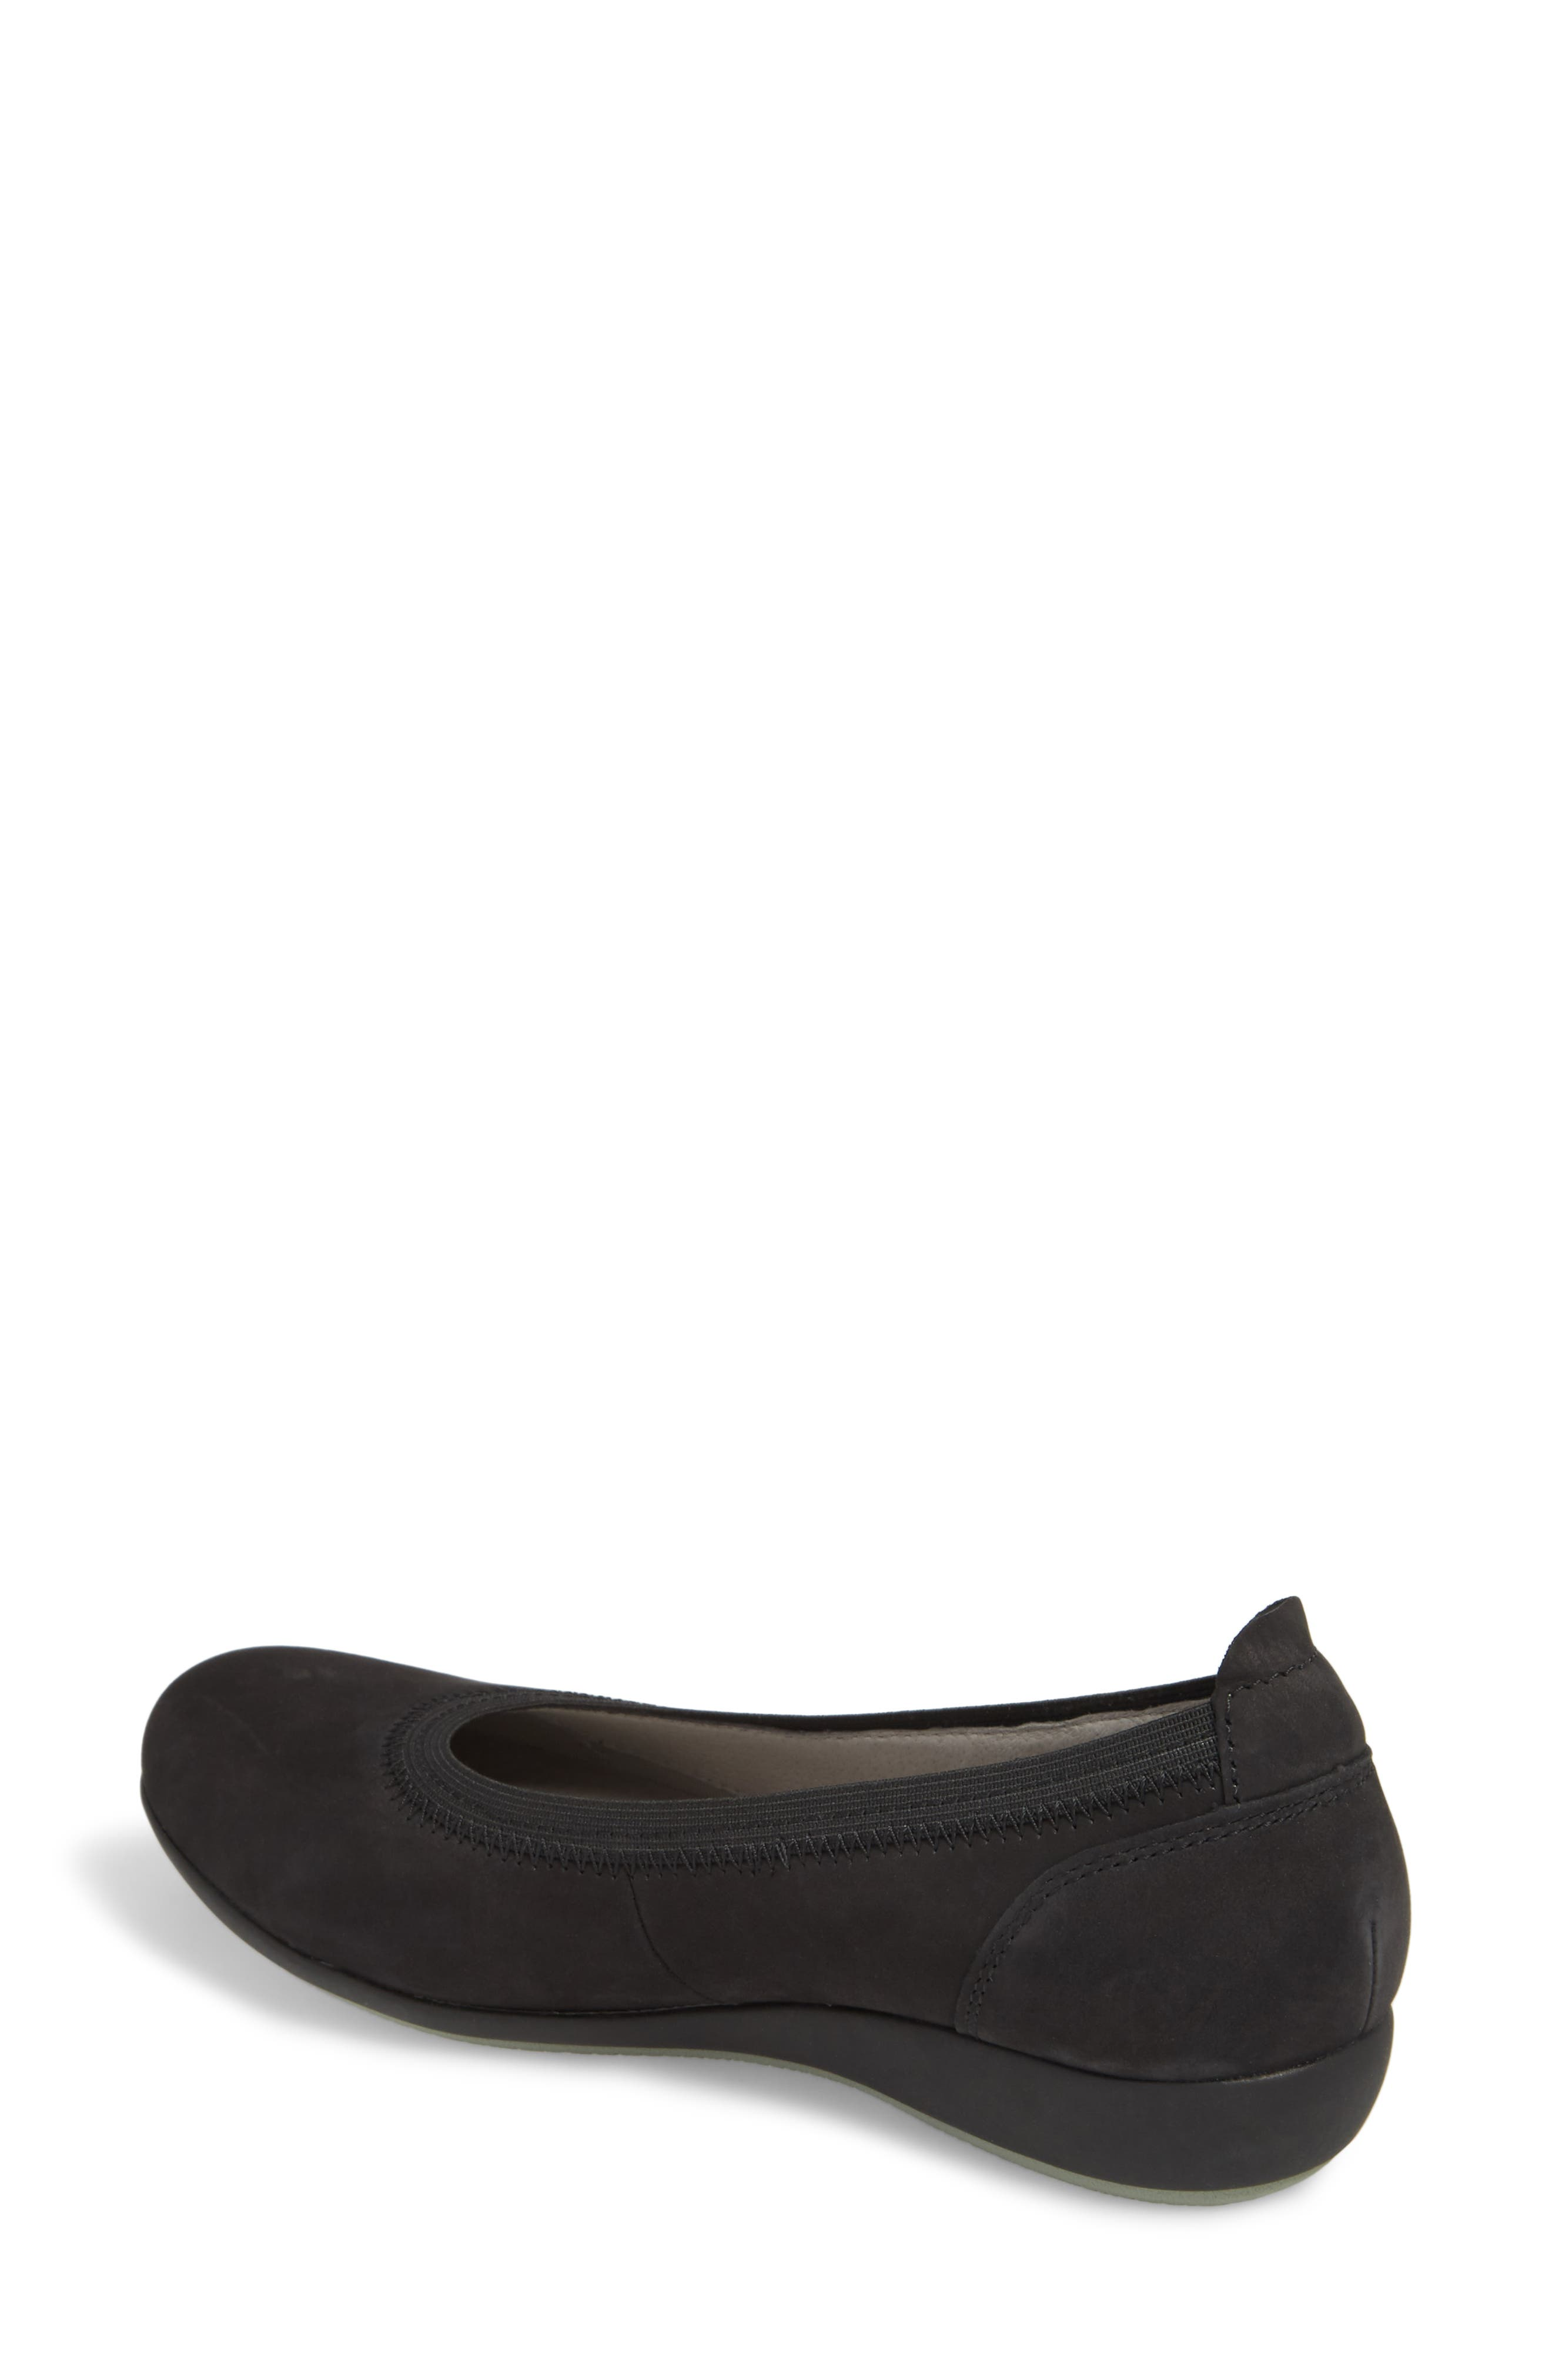 Kristen Ballet Flat,                             Alternate thumbnail 2, color,                             BLACK MILLED NUBUCK